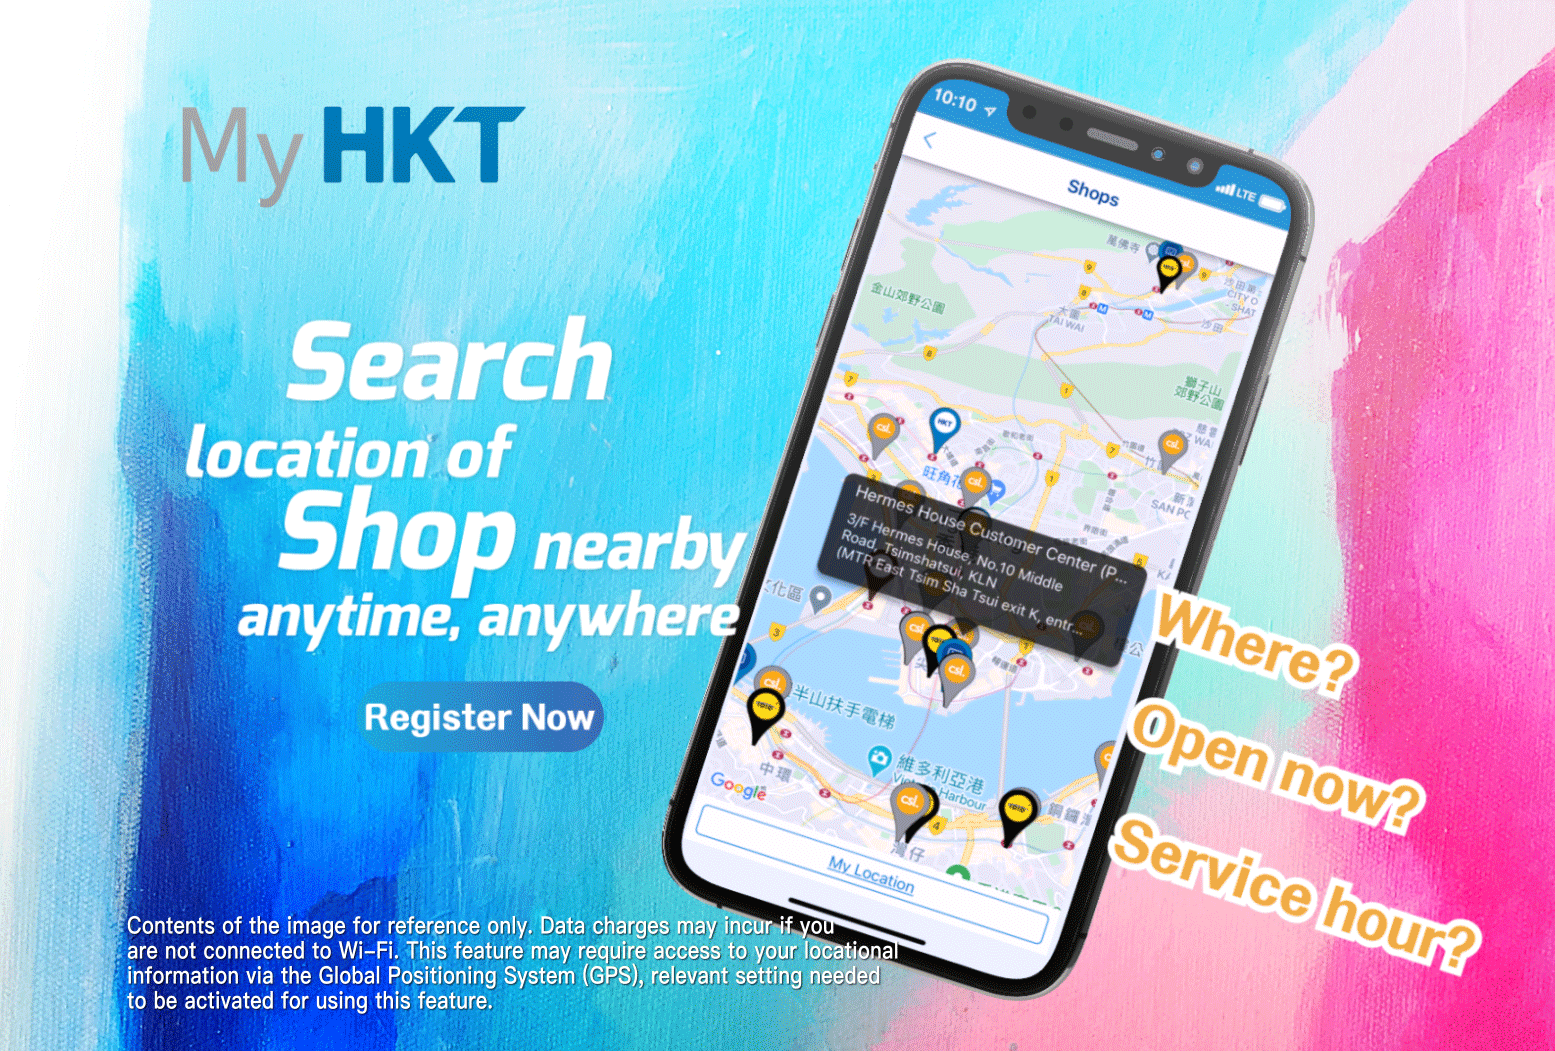 My HKT: Search location of Shop nearby anytime, anywhere